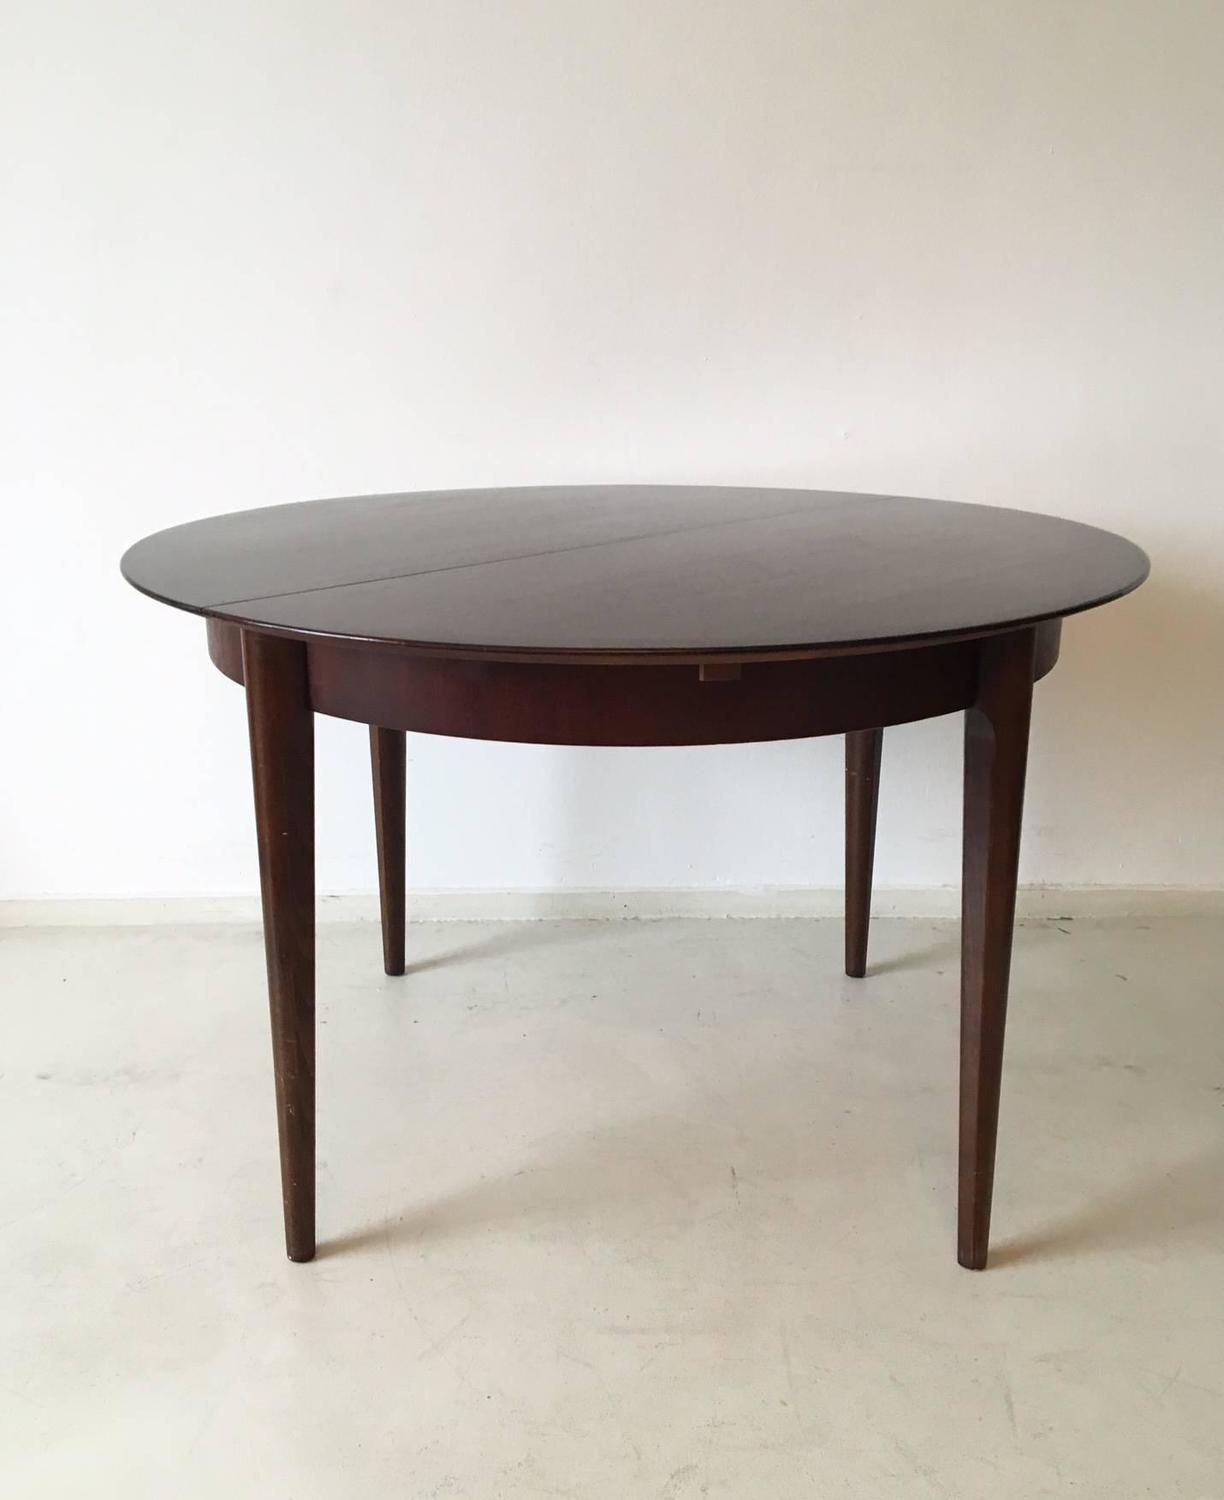 round or oval extendable dining table by lubke 1960s for sale at 1stdibs. Black Bedroom Furniture Sets. Home Design Ideas